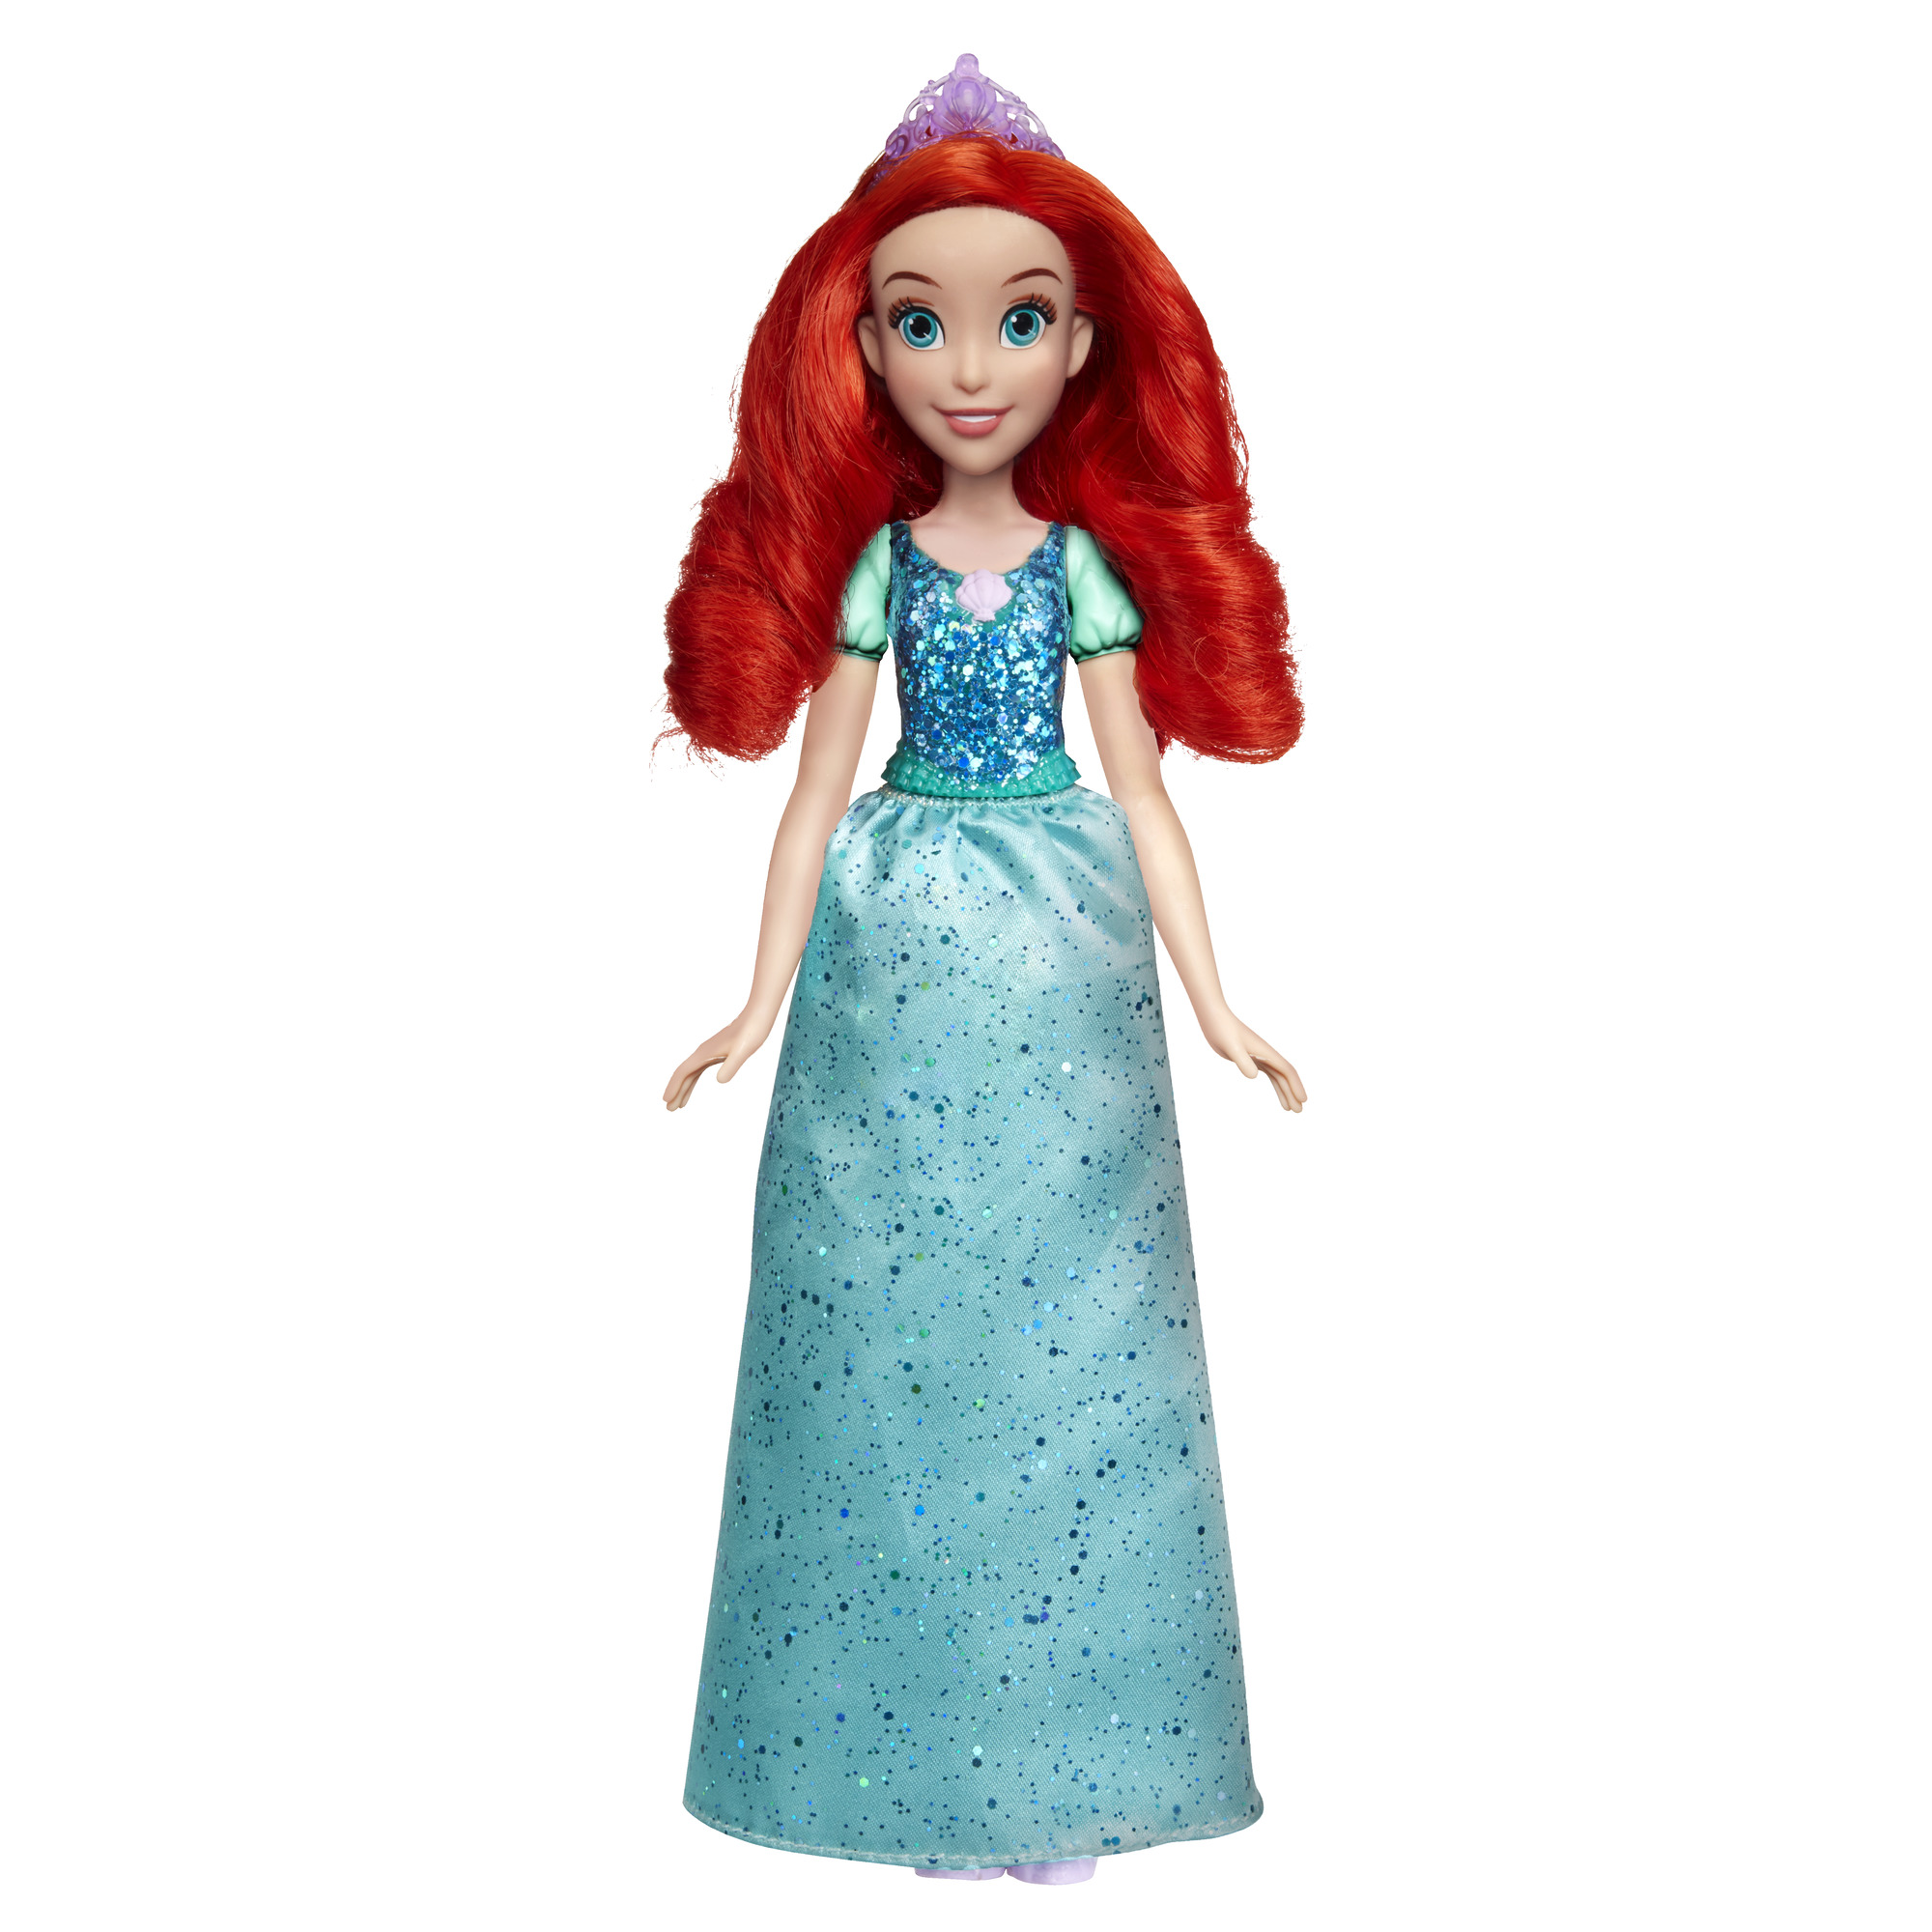 Disney Princess Royal Shimmer Ariel, Ages 3 and up